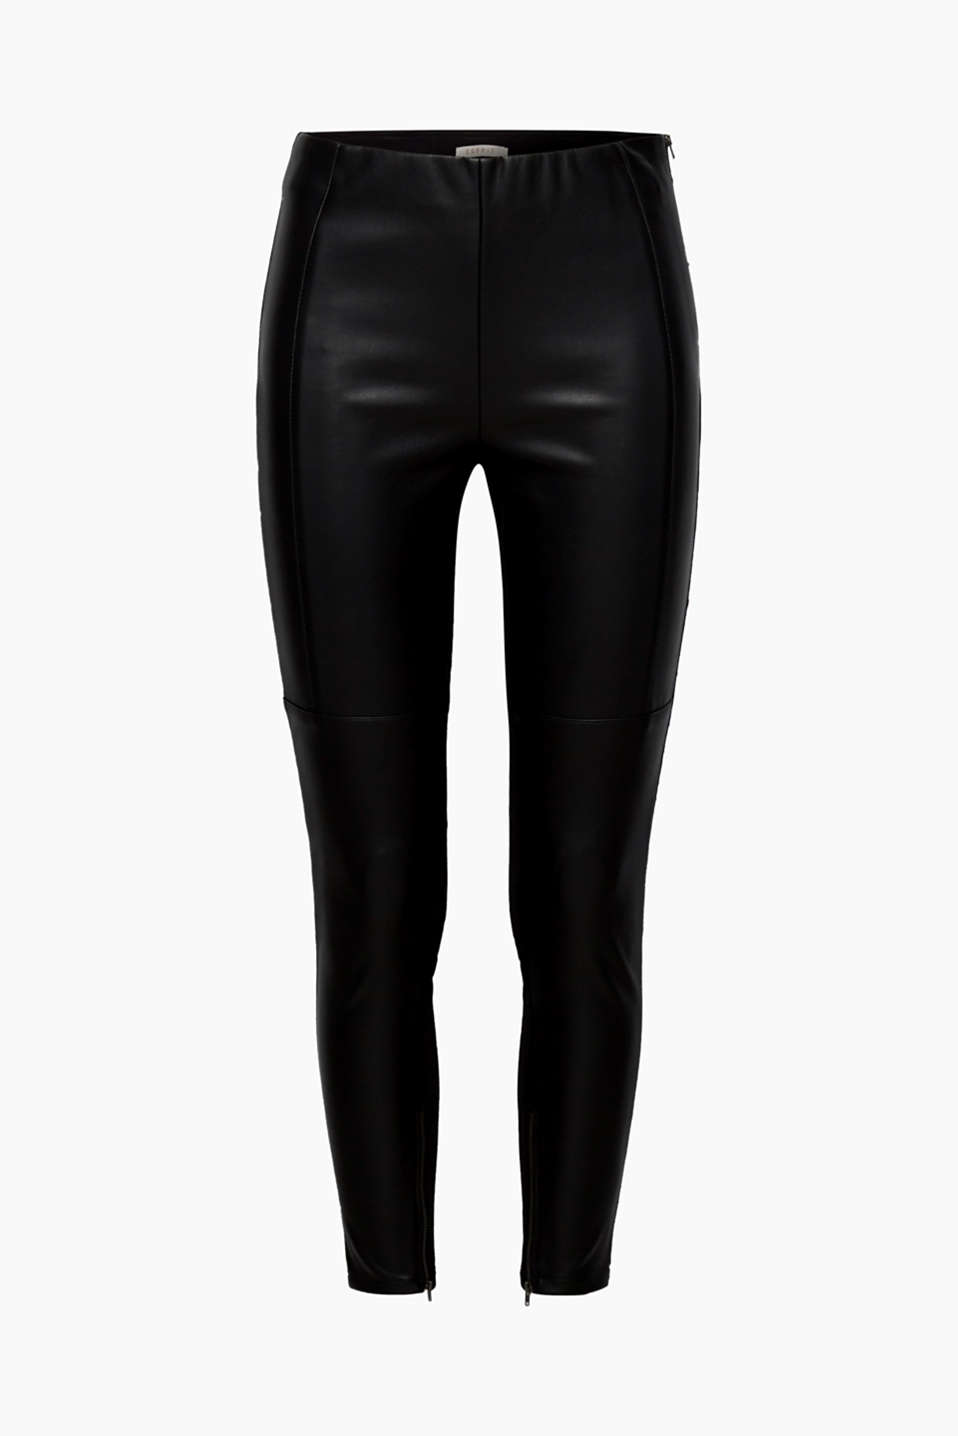 Stylish and sexy, these comfortable treggings feature faux leather on the front and comfy jersey on the back!